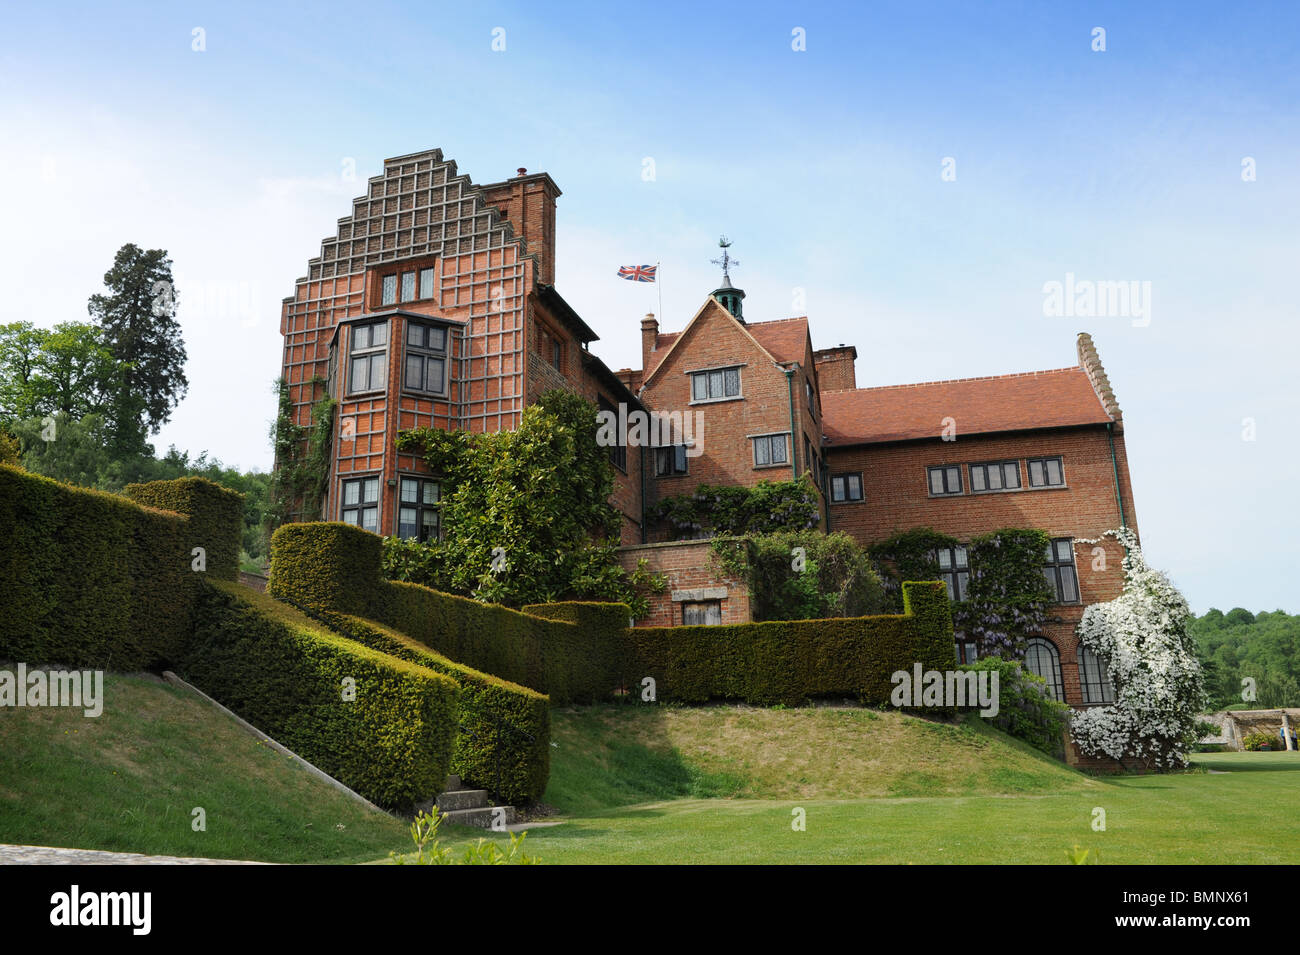 Chartwell The Former Home Of Sir Winston Churchill In Kent England Uk Stock Photo 29985033 Alamy